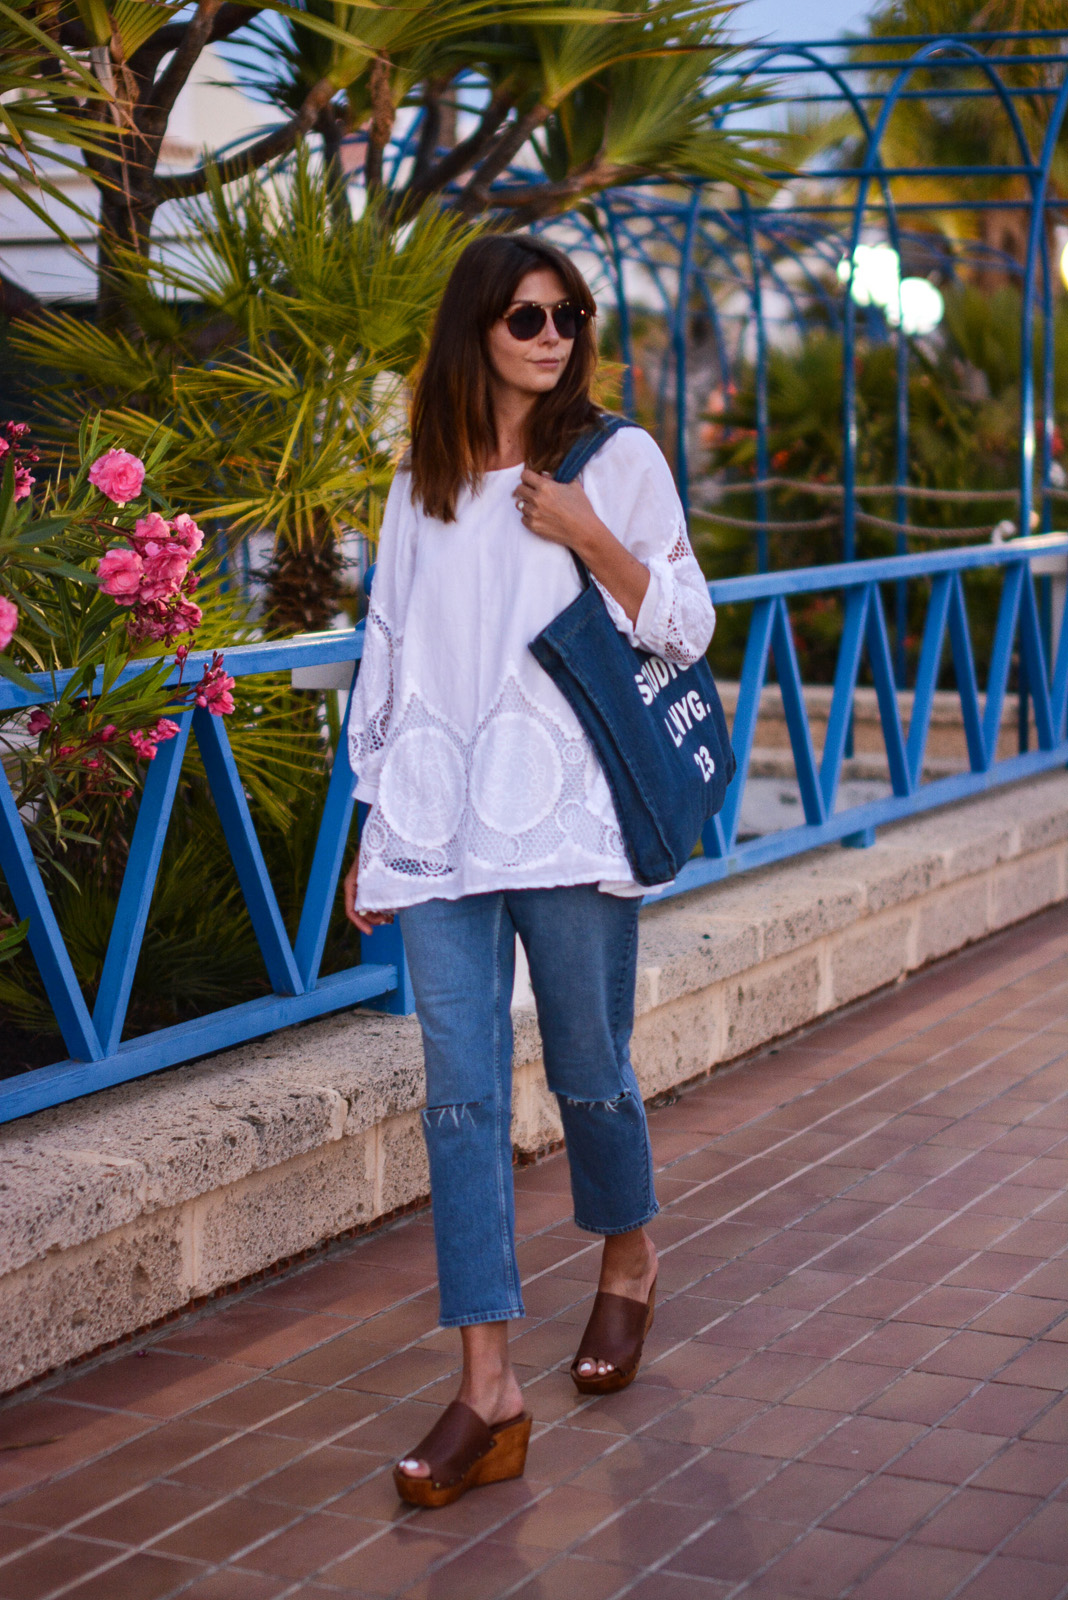 EJSTYLE - Emma Hill wears Acne Studios printed denim tote bag, white summer top with cut out embroidered detail, mASOS thea girlfriend jeans, Dune Keera wedge sandals, Asos aviator sunglasses, OOTD